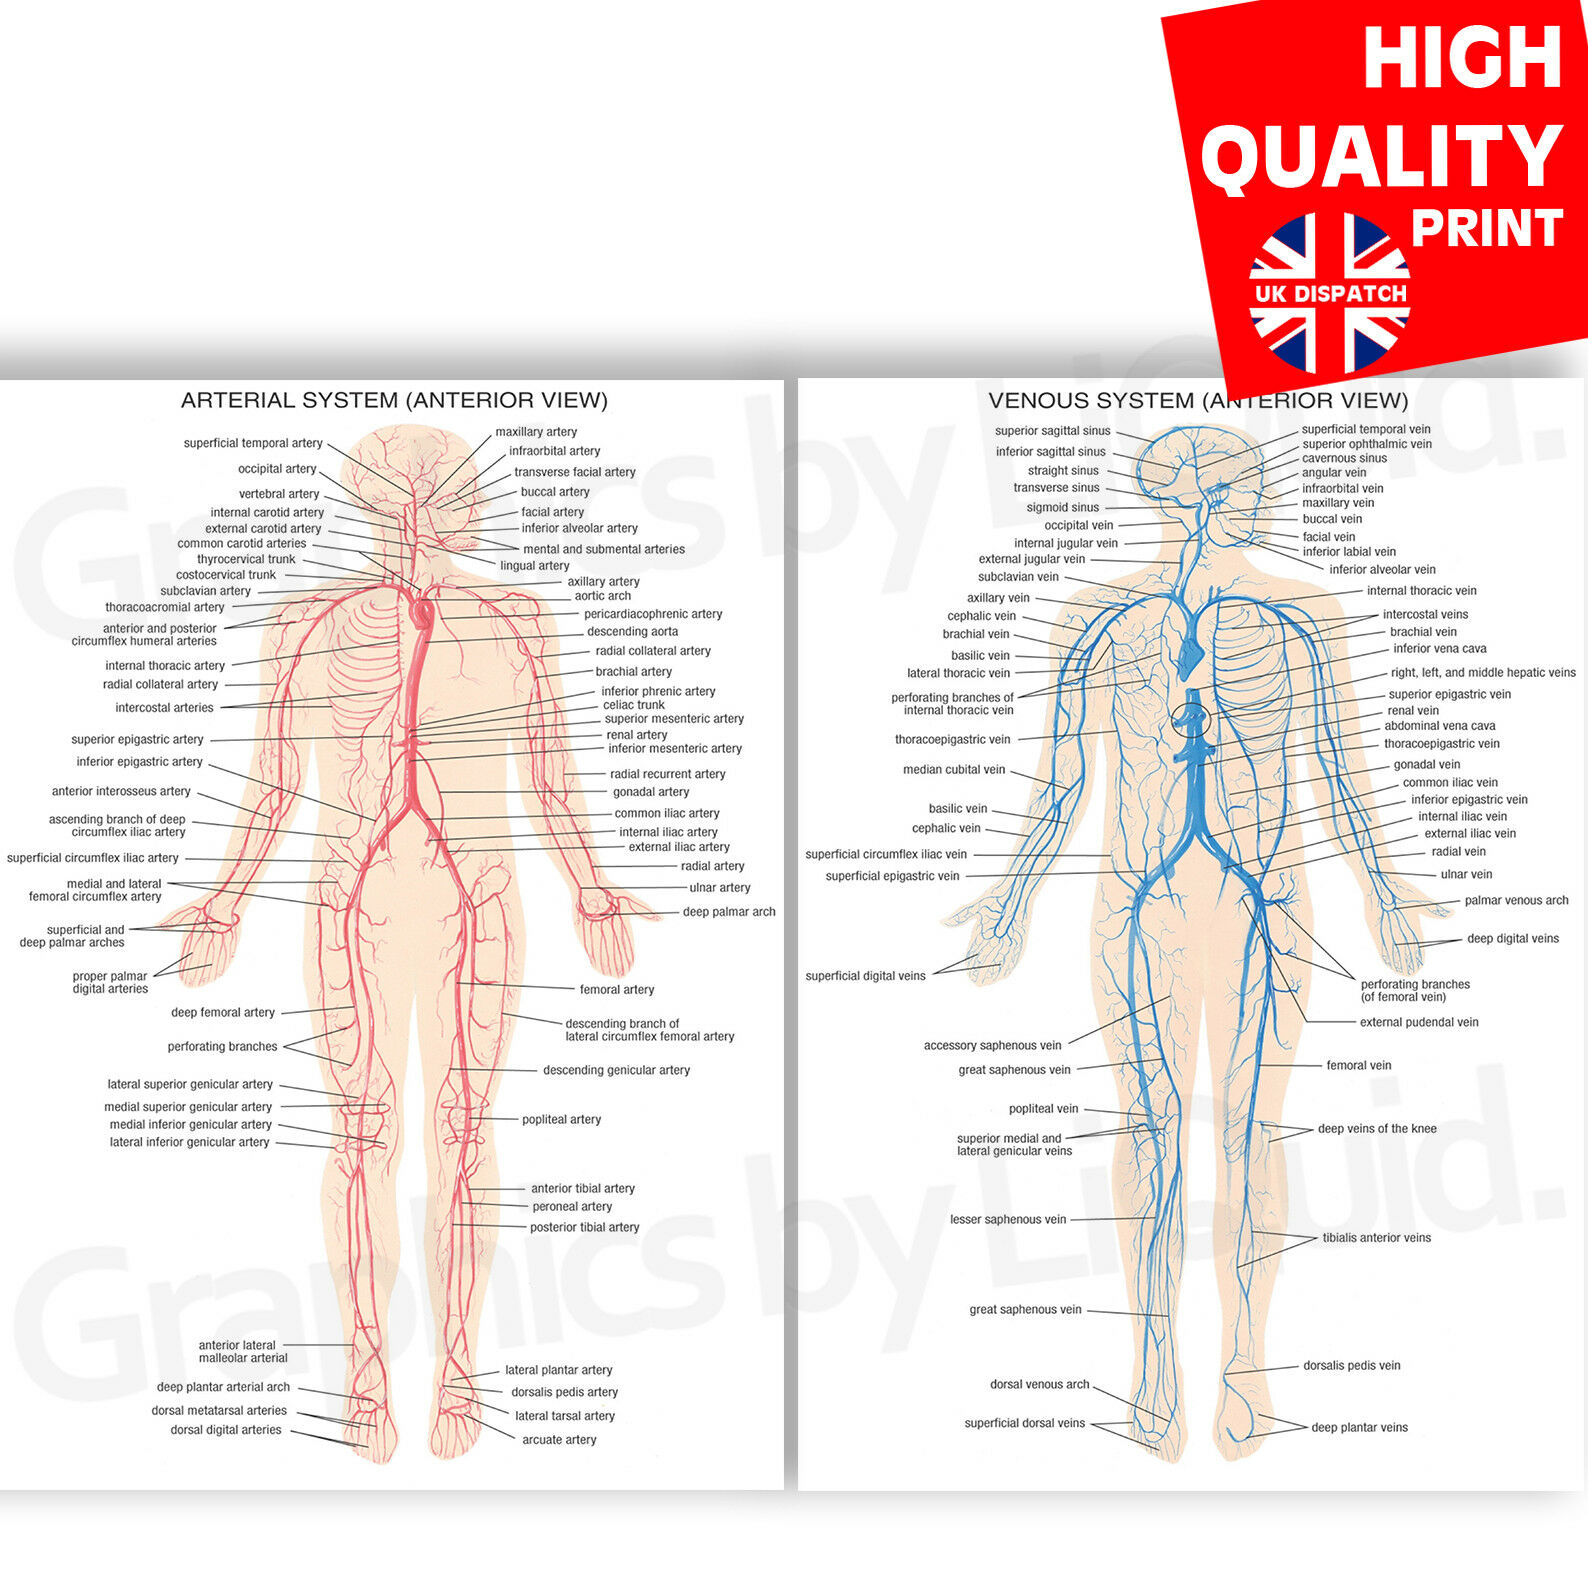 Venous And Arterial System Education Anatomy Poster Print A4 A3 A2